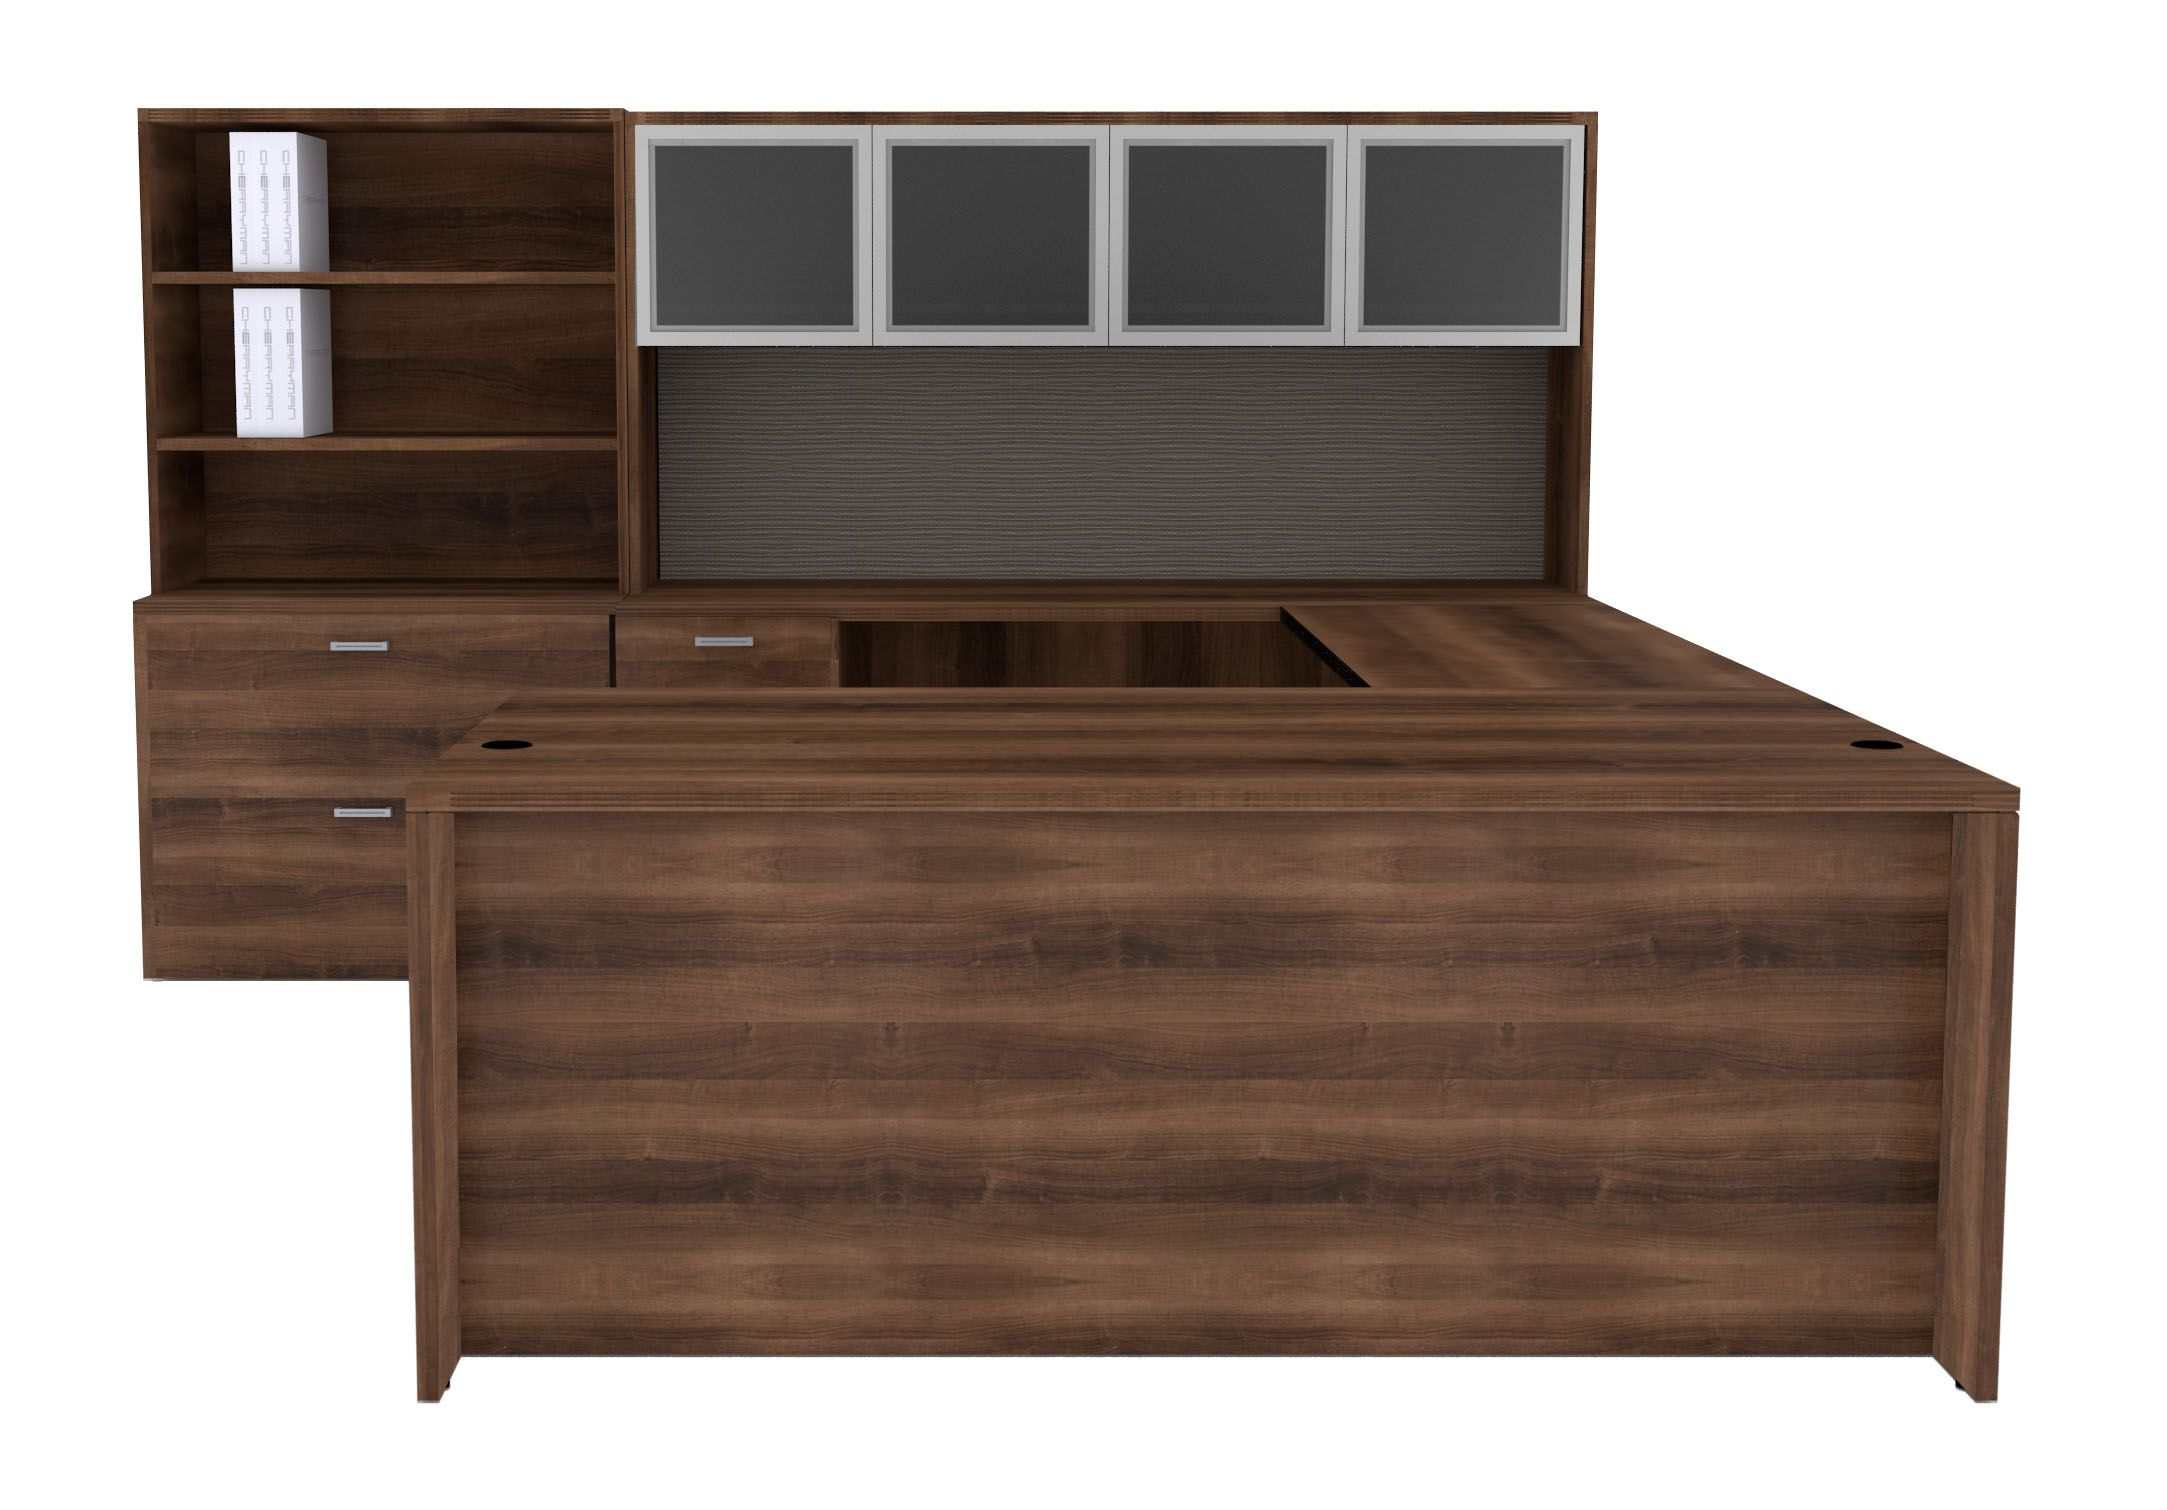 Amber Woodtouch Laminate Collection  Cherryman Industries Office Furniture And